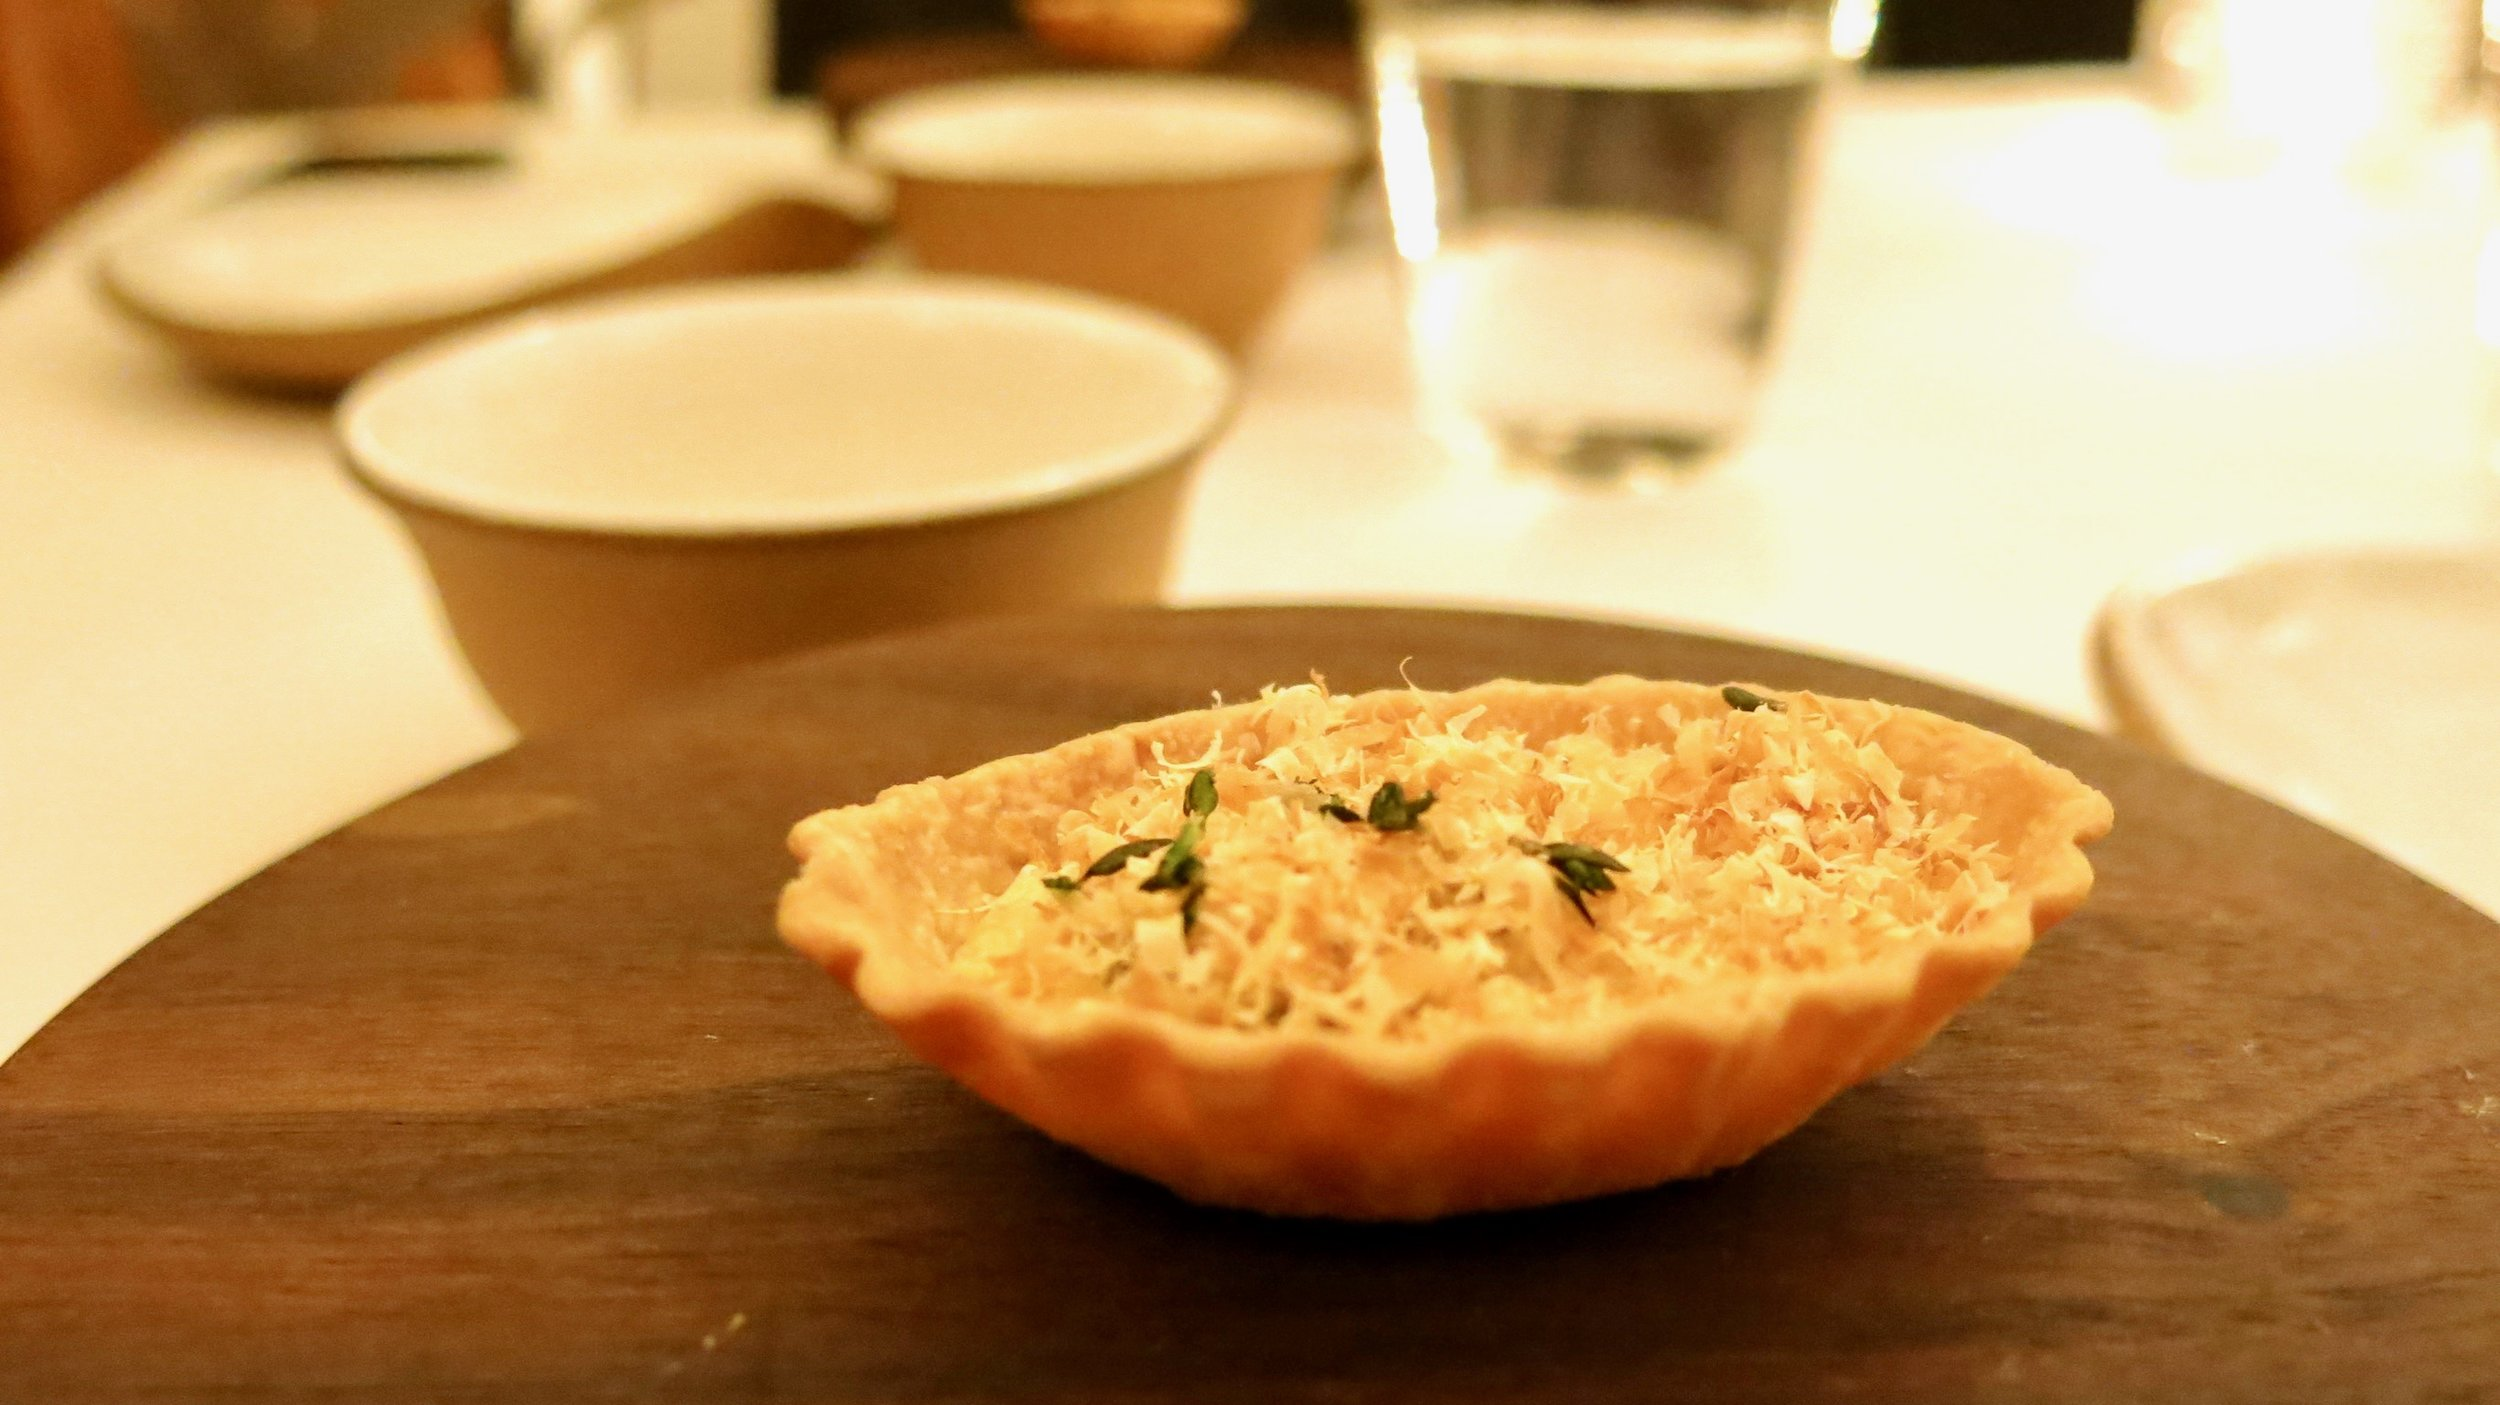 3rd Course - Oyster: Pie and Veloute (Outstanding Dish)